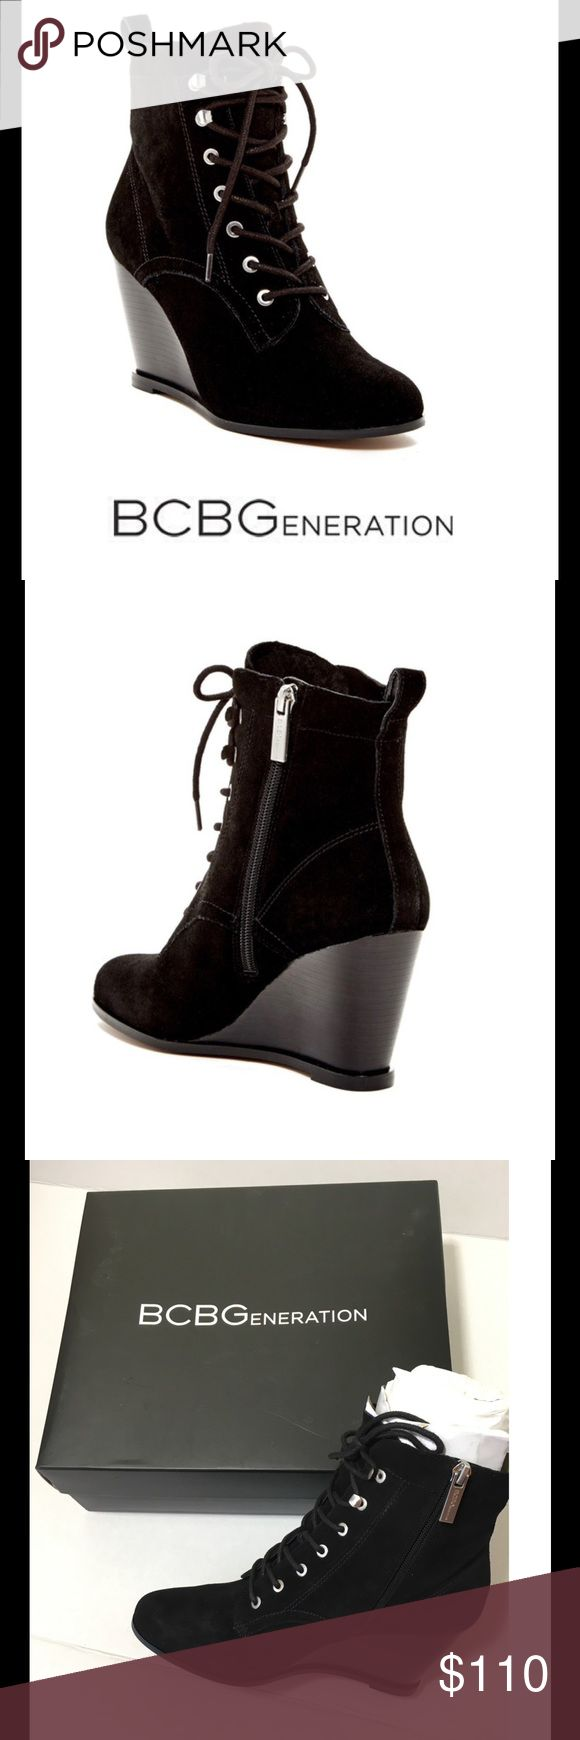 """🆕 BCBGeneration Wiley Wedge Bootie BCBG Black Suede Wedge Bootie. Features: Round Toe. Suede Construction. Lace-Up with side zip closure. Lightly padded insole. Back pull loop. Stacked wedge heel. Approx 3 3/8"""" Heel. Approx. 6"""" shaft. Suede Upper man made sole. Brand new in box with original packaging from Nordstrom. BCBGeneration Shoes Ankle Boots & Booties"""